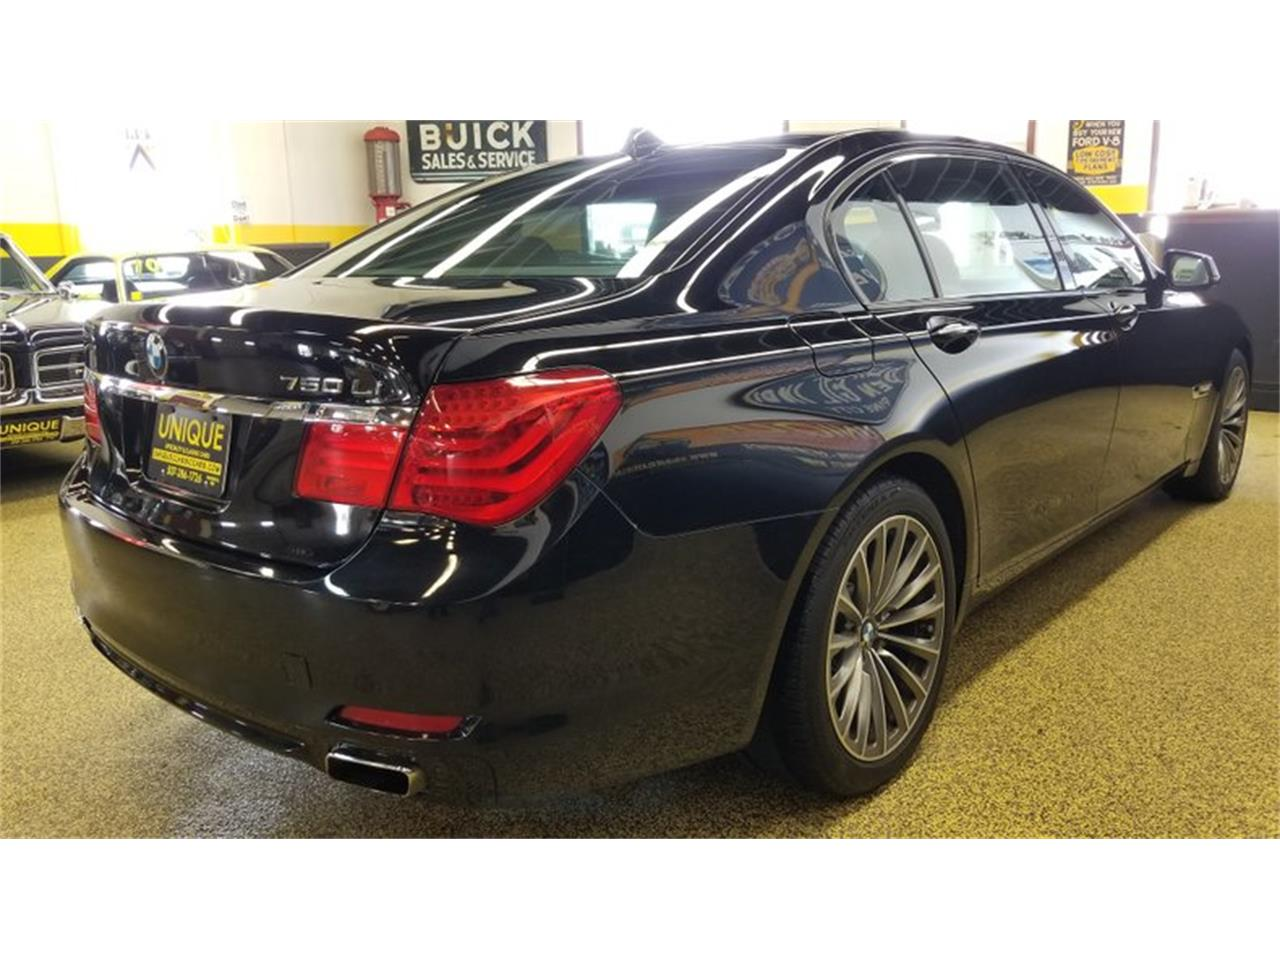 2009 Bmw 750li For Sale >> 2009 Bmw 750li For Sale In Mankato Mn Classiccarsbay Com